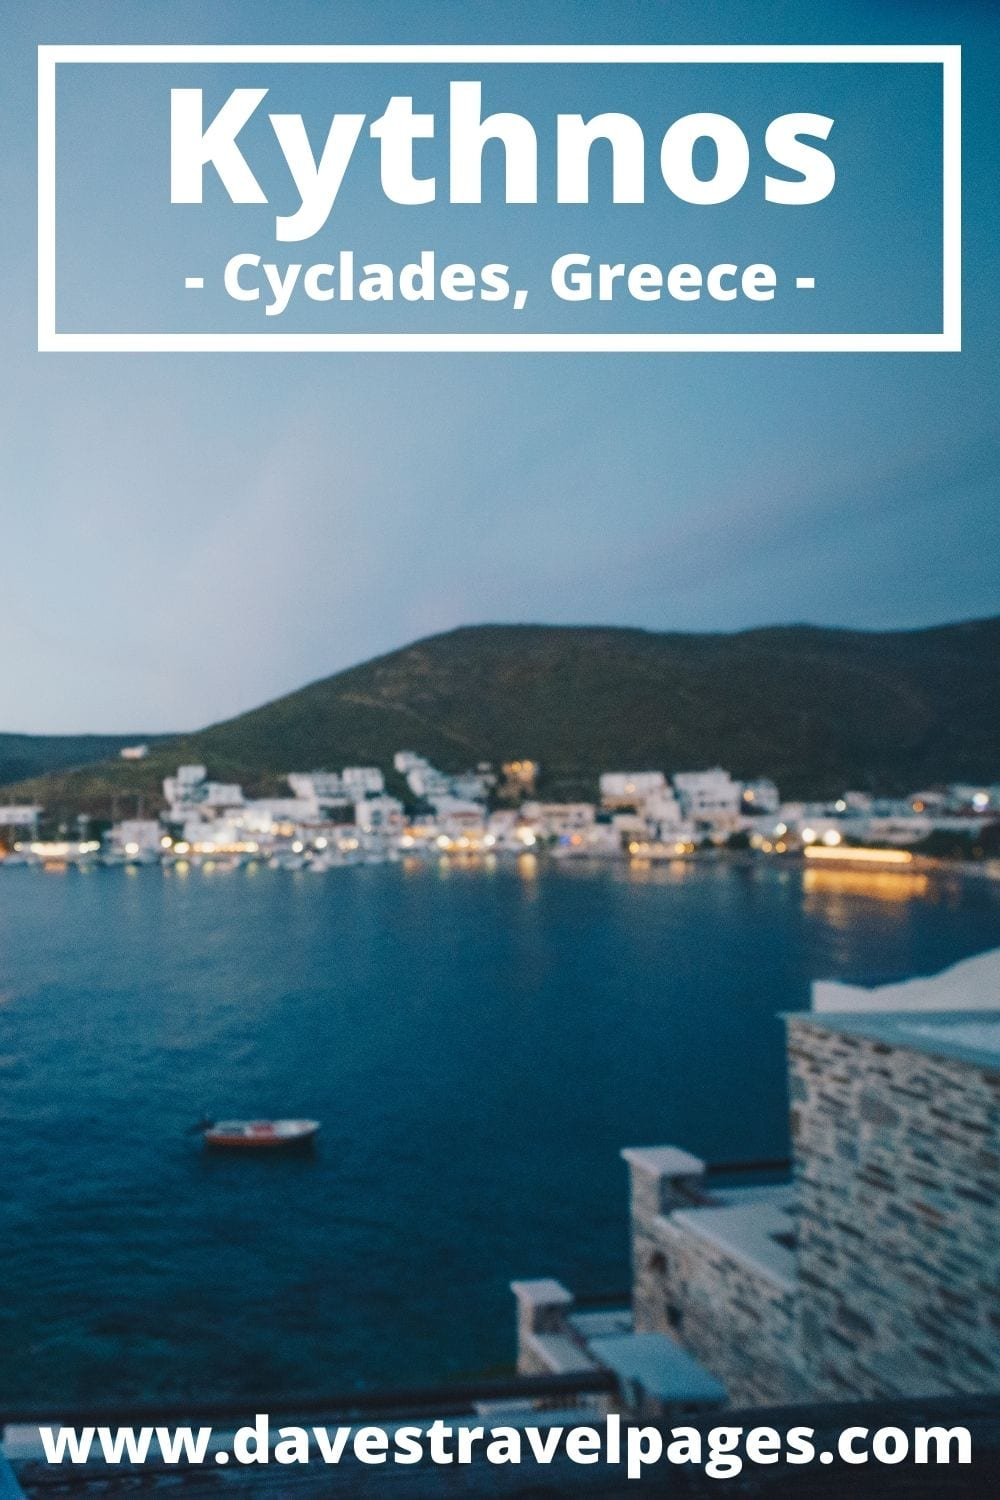 Taking a ferry to Kythnos island from Milos in Greece